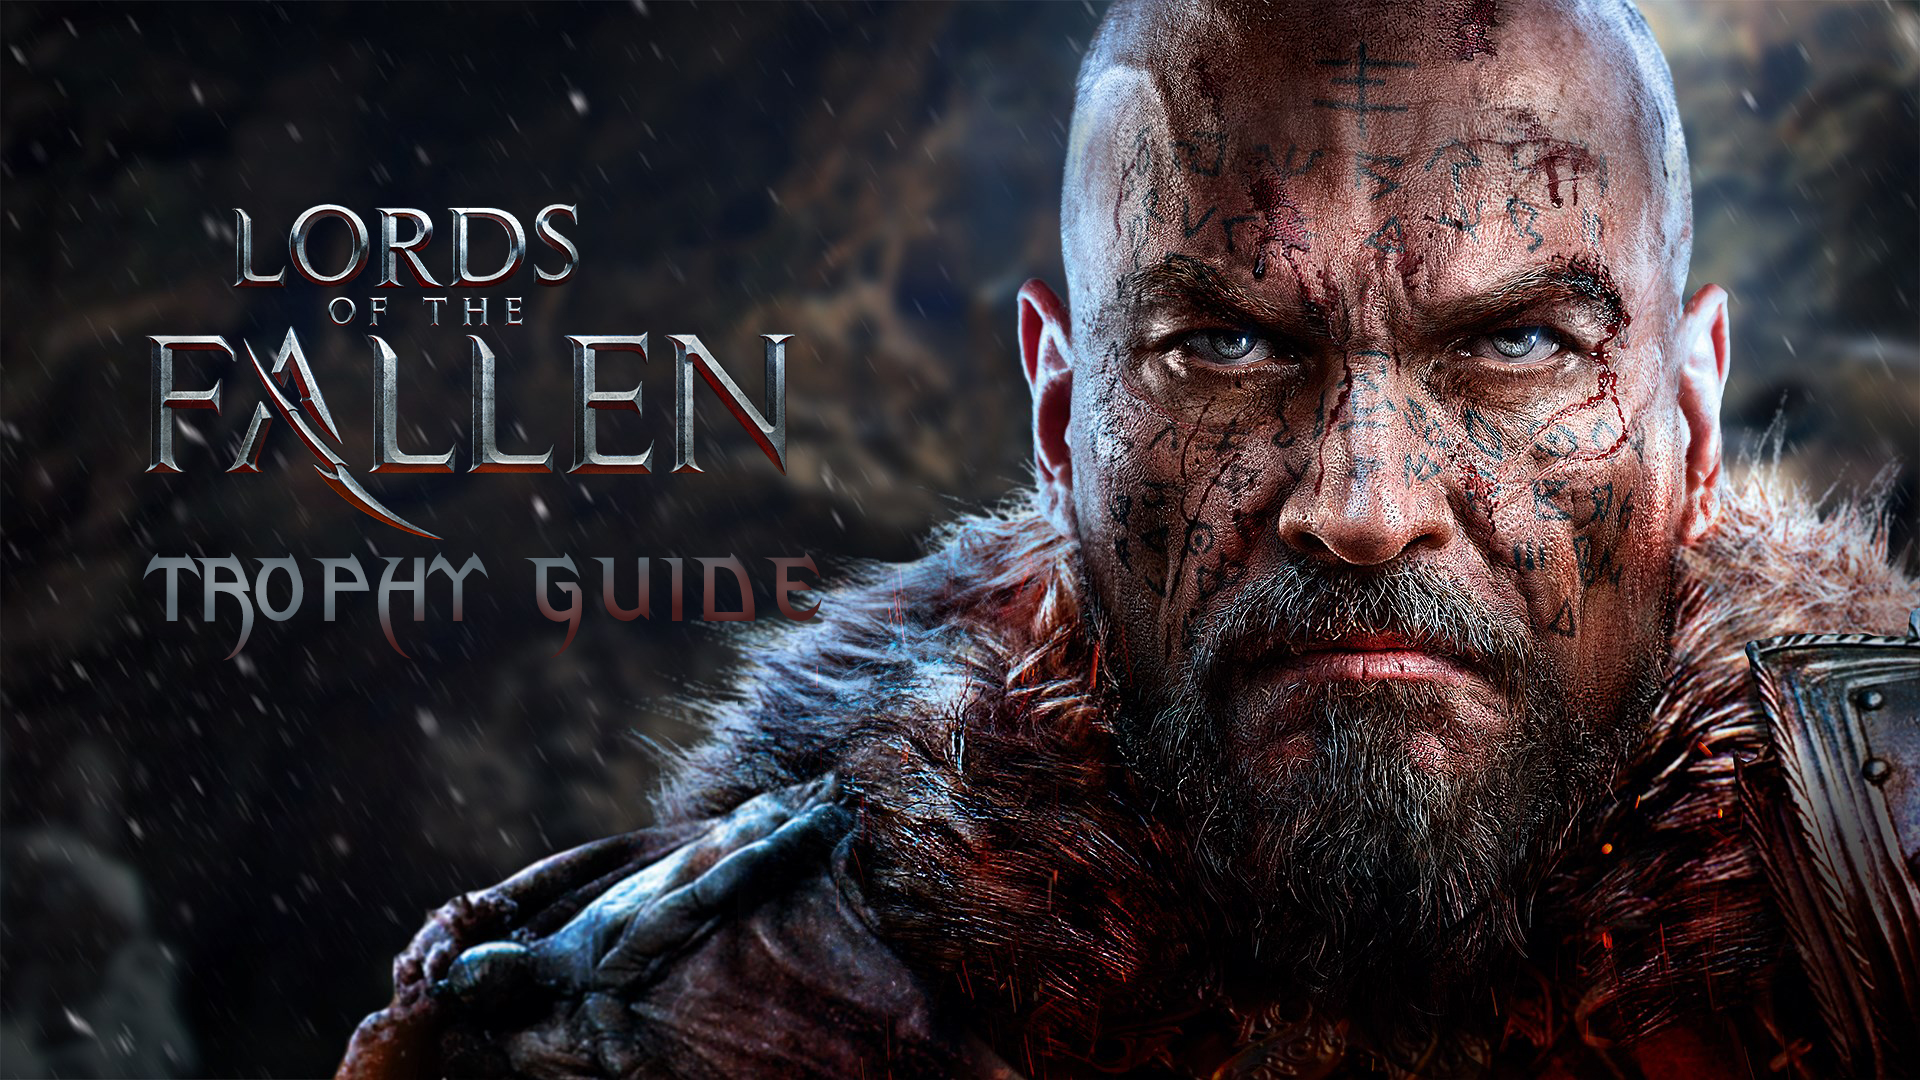 Lords of the Fallen Trophy Guide